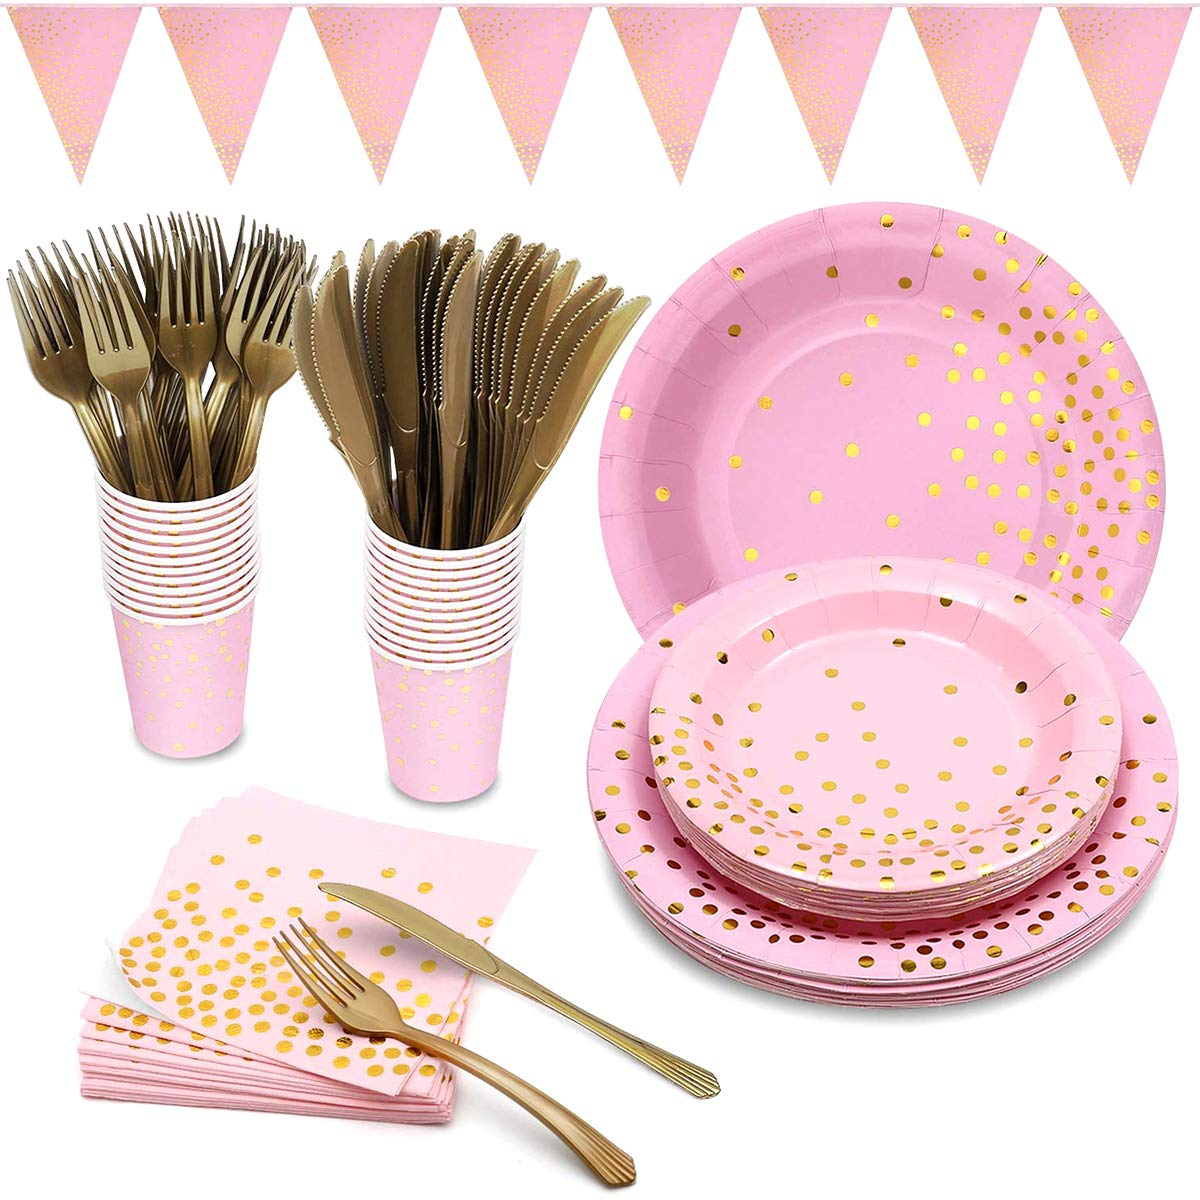 Yinuoday Pink and Gold Party Supplies for 24 Guest,Golden Dot Pink Themed Party Decoration Set Including Plates,Tissues,Knives,Forks,Cups,Banner for Girl Birthday Party,Baby Shower